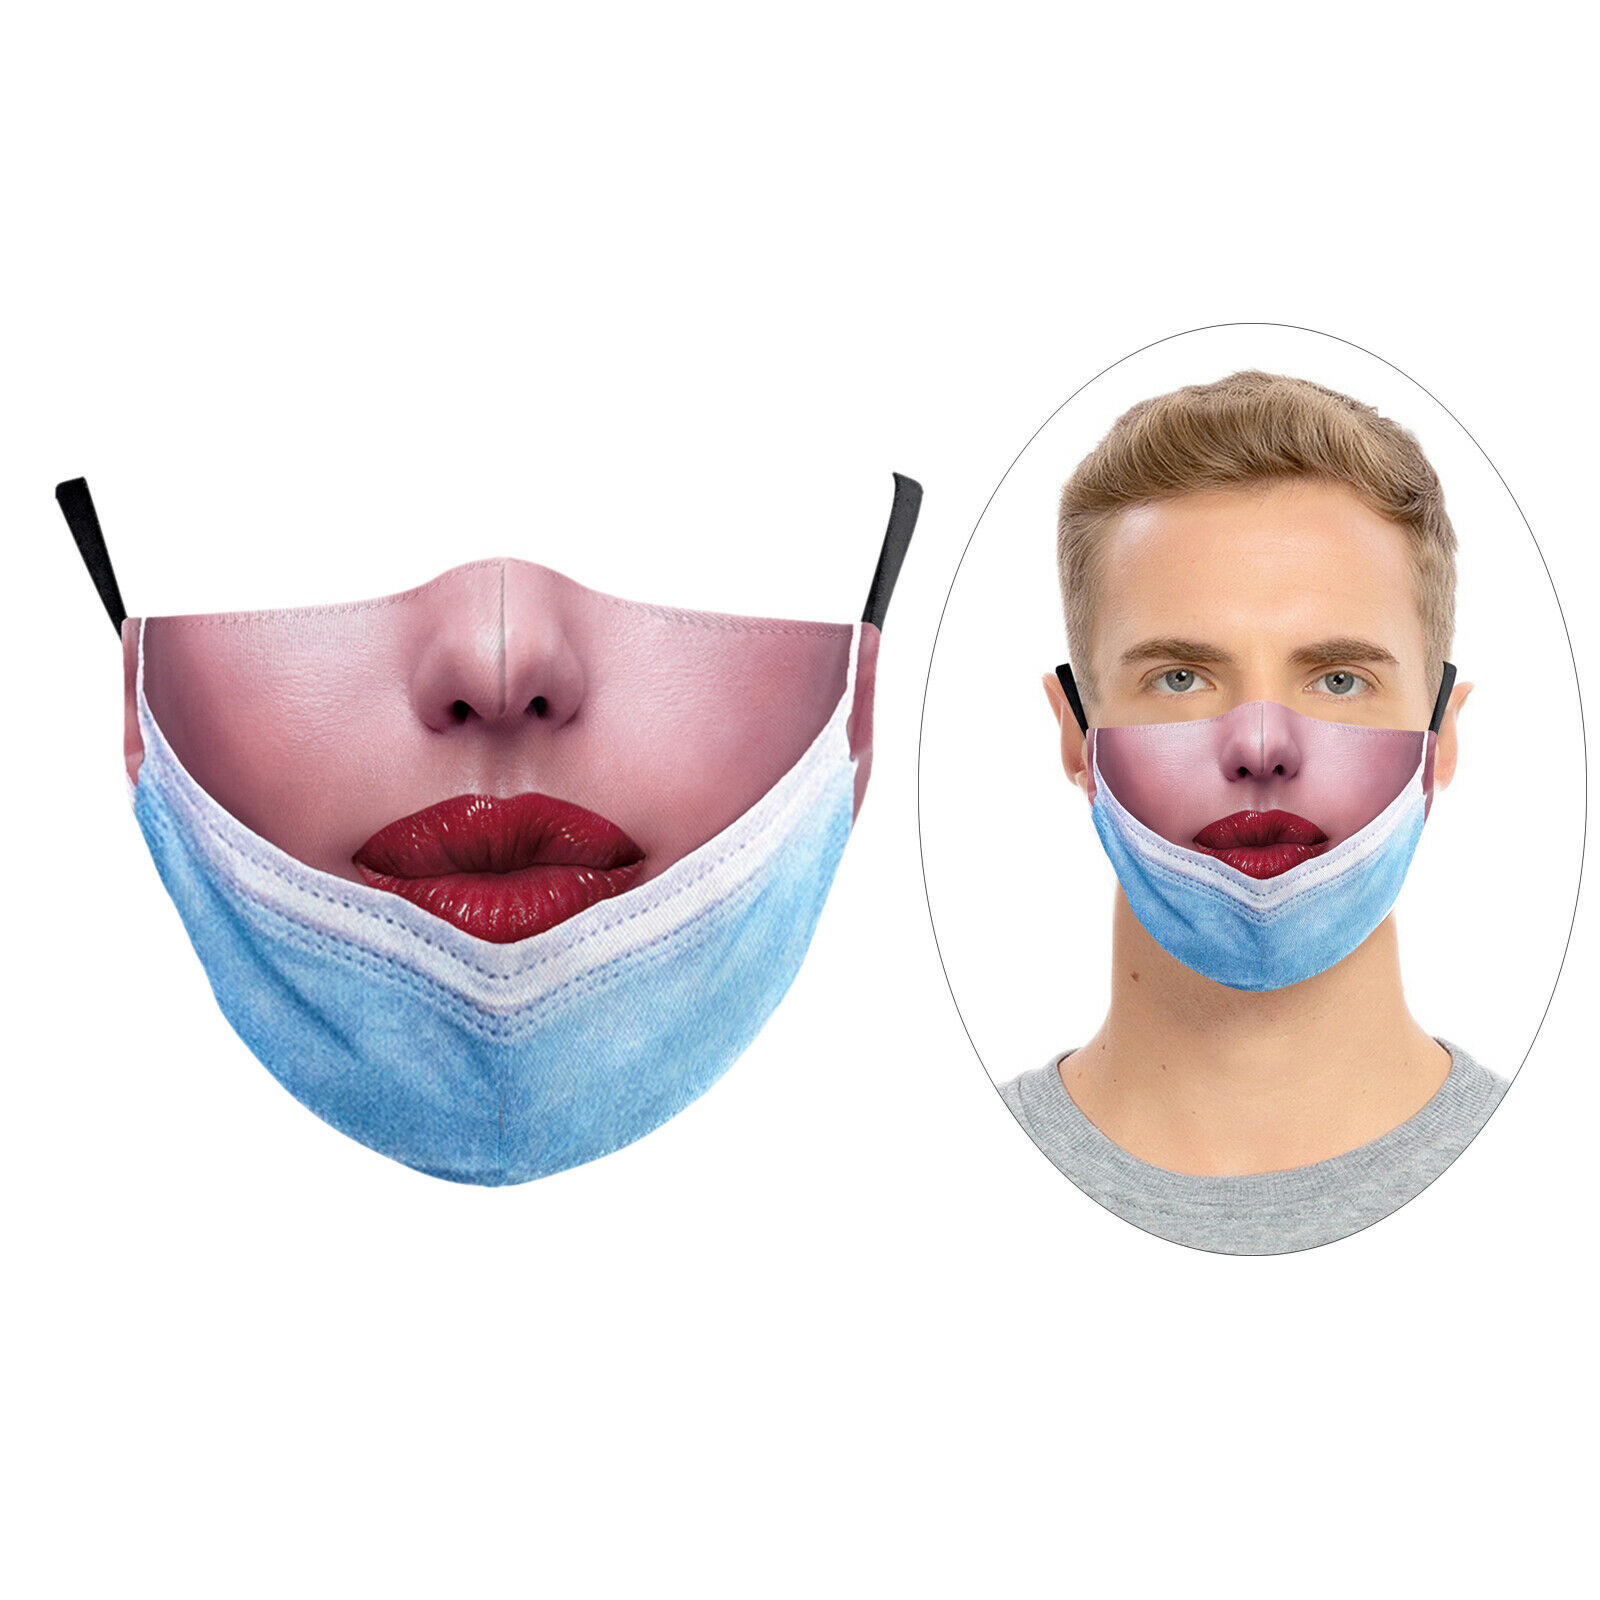 Funny Face Mask Maskless Pulled Down Prank Mouth Covering for Men Women D